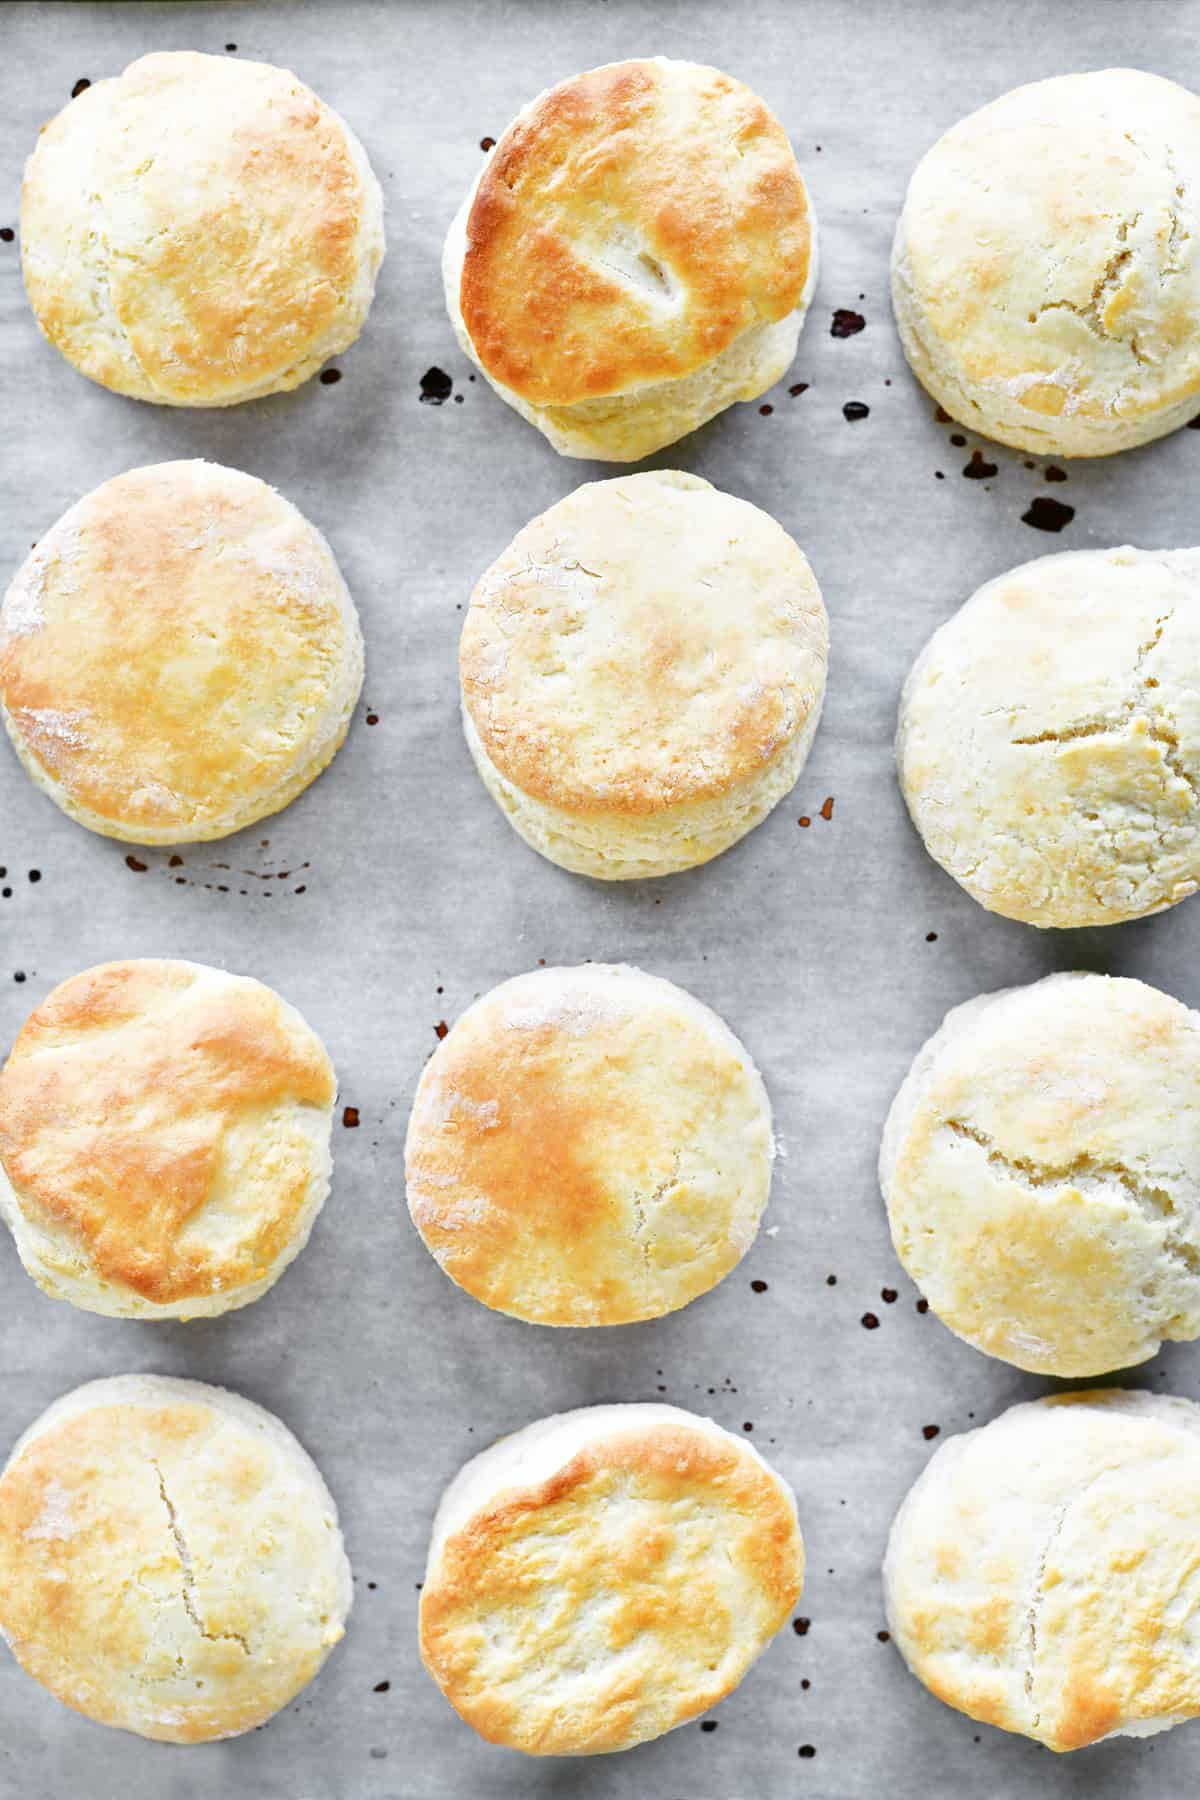 Bisquick Biscuits With Buttermilk The Gunny Sack In 2020 Bisquick Biscuits Bisquick Recipes Bisquick Recipes Biscuits